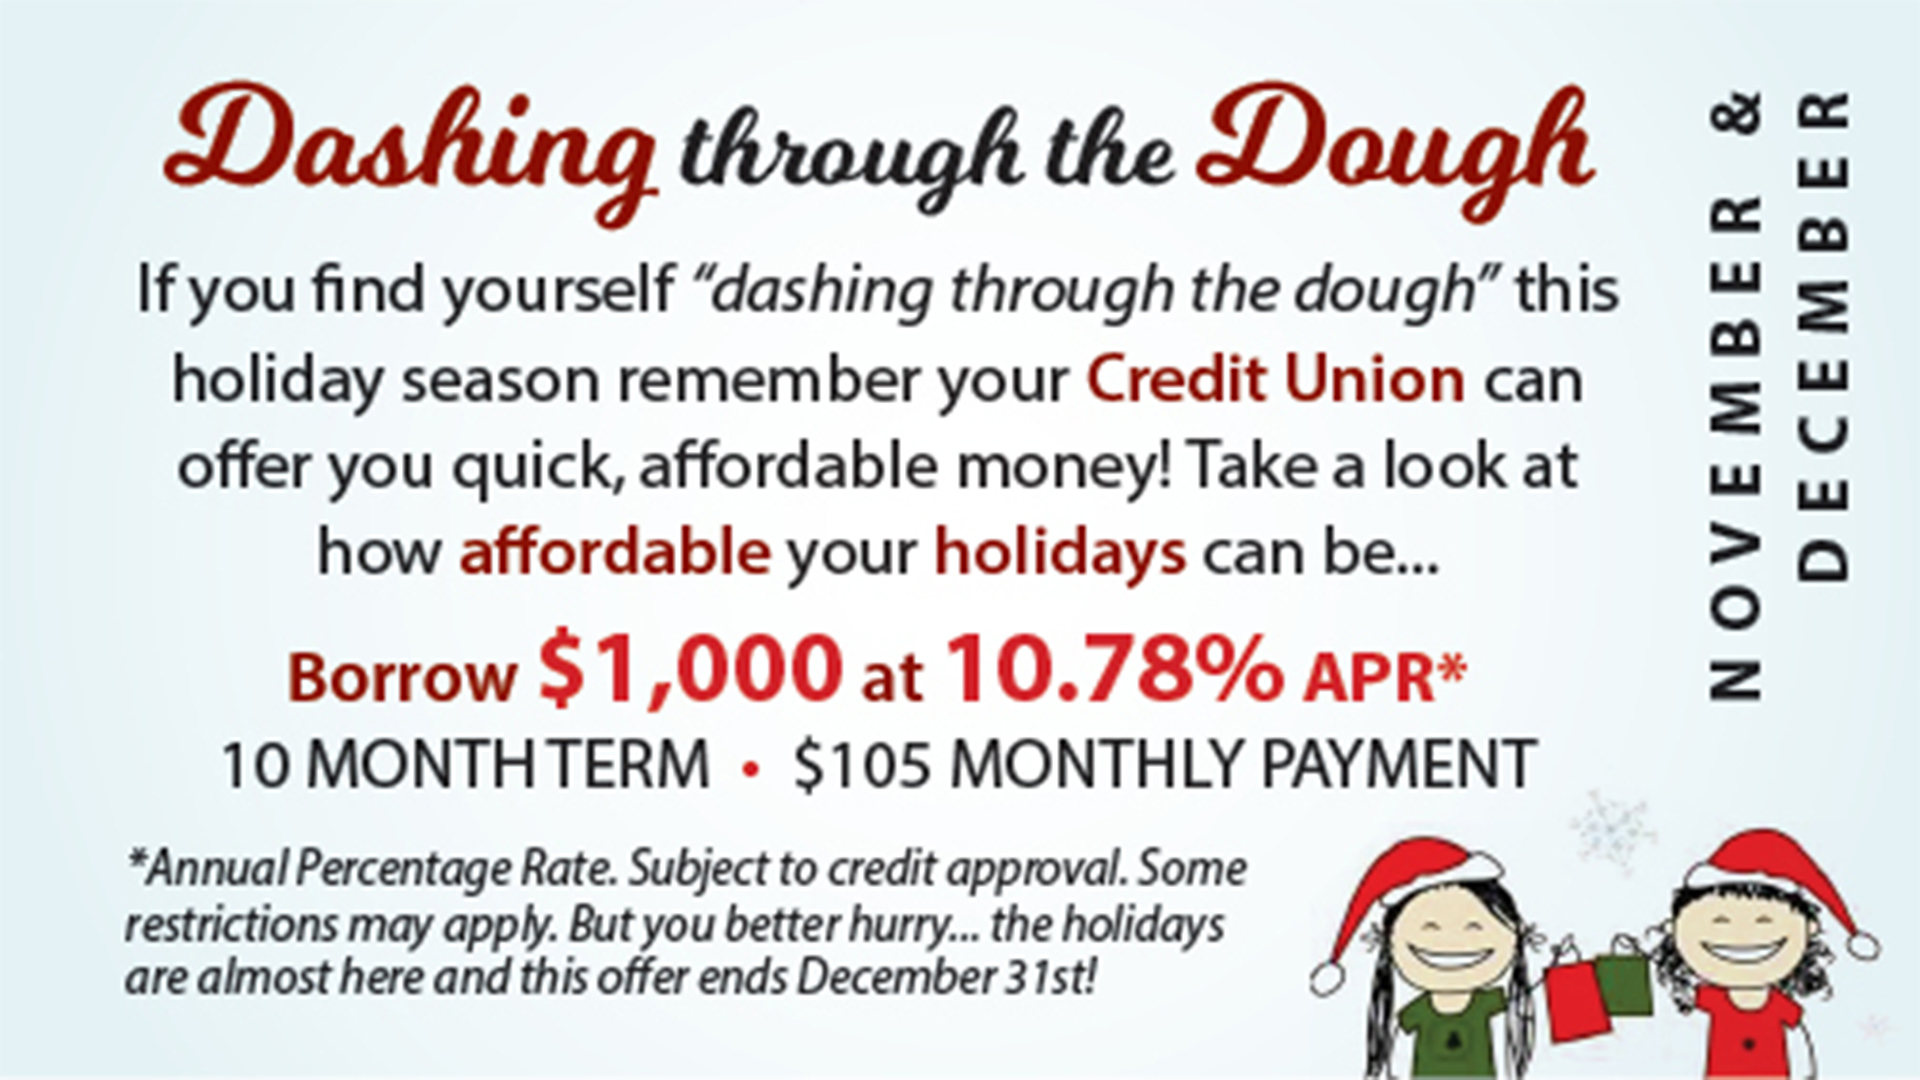 Need some cash for the holiday?  Apply for our Dashing through the Dough Loan! Based on approved credit. Some restrictions may apply. Call 928-753-8000 for more information.